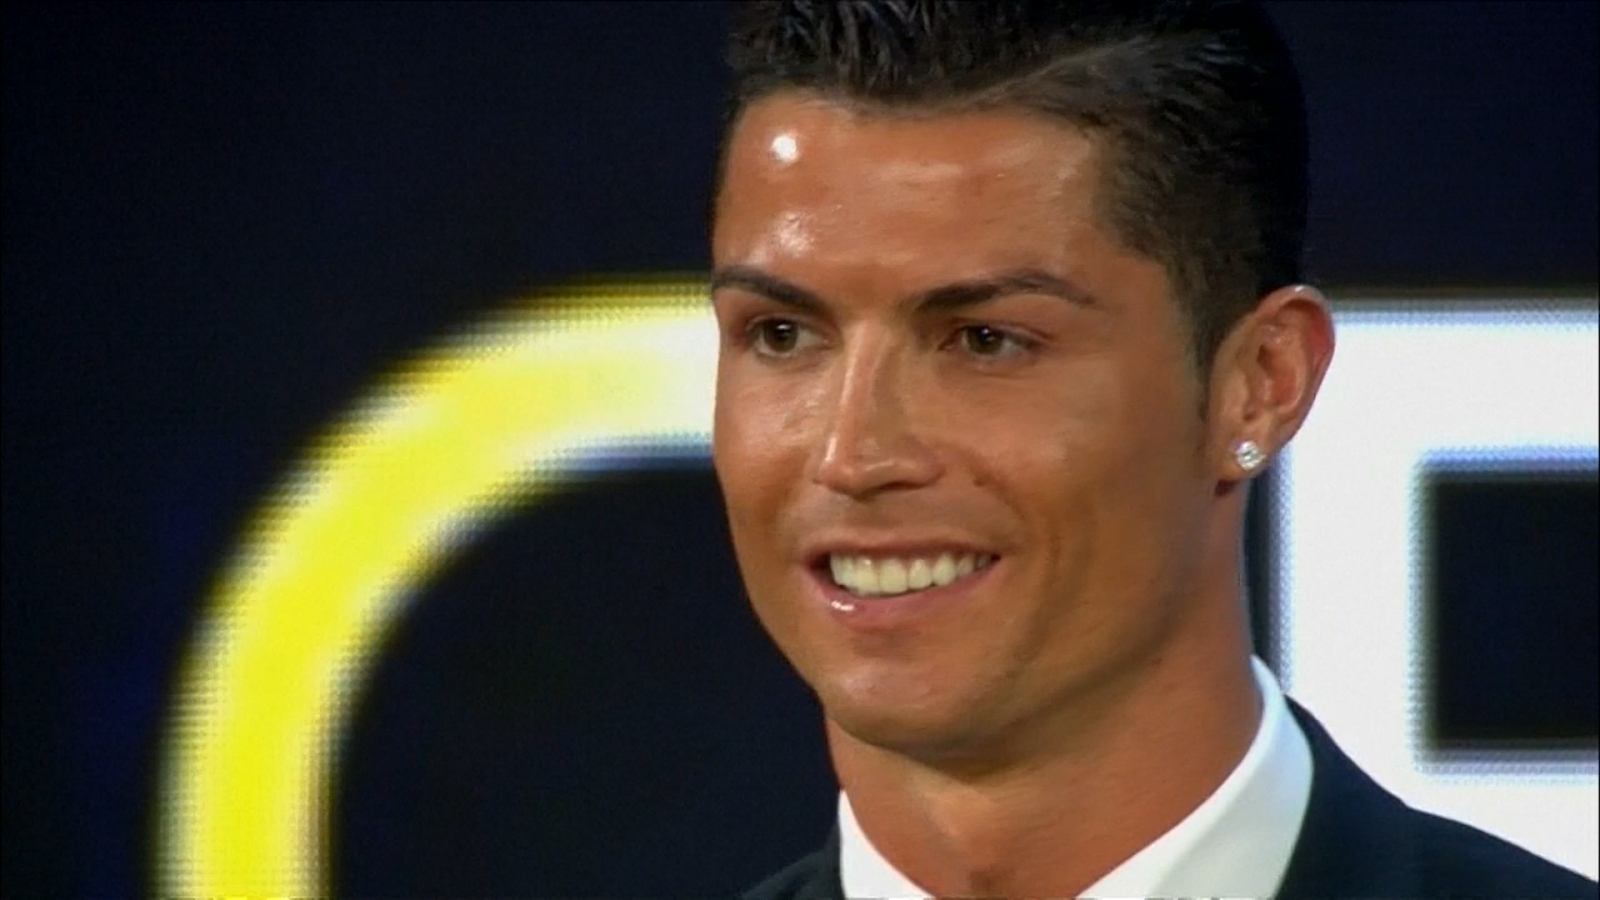 Cristiano Ronaldo wins best player at 2014 Globe Soccer Awards